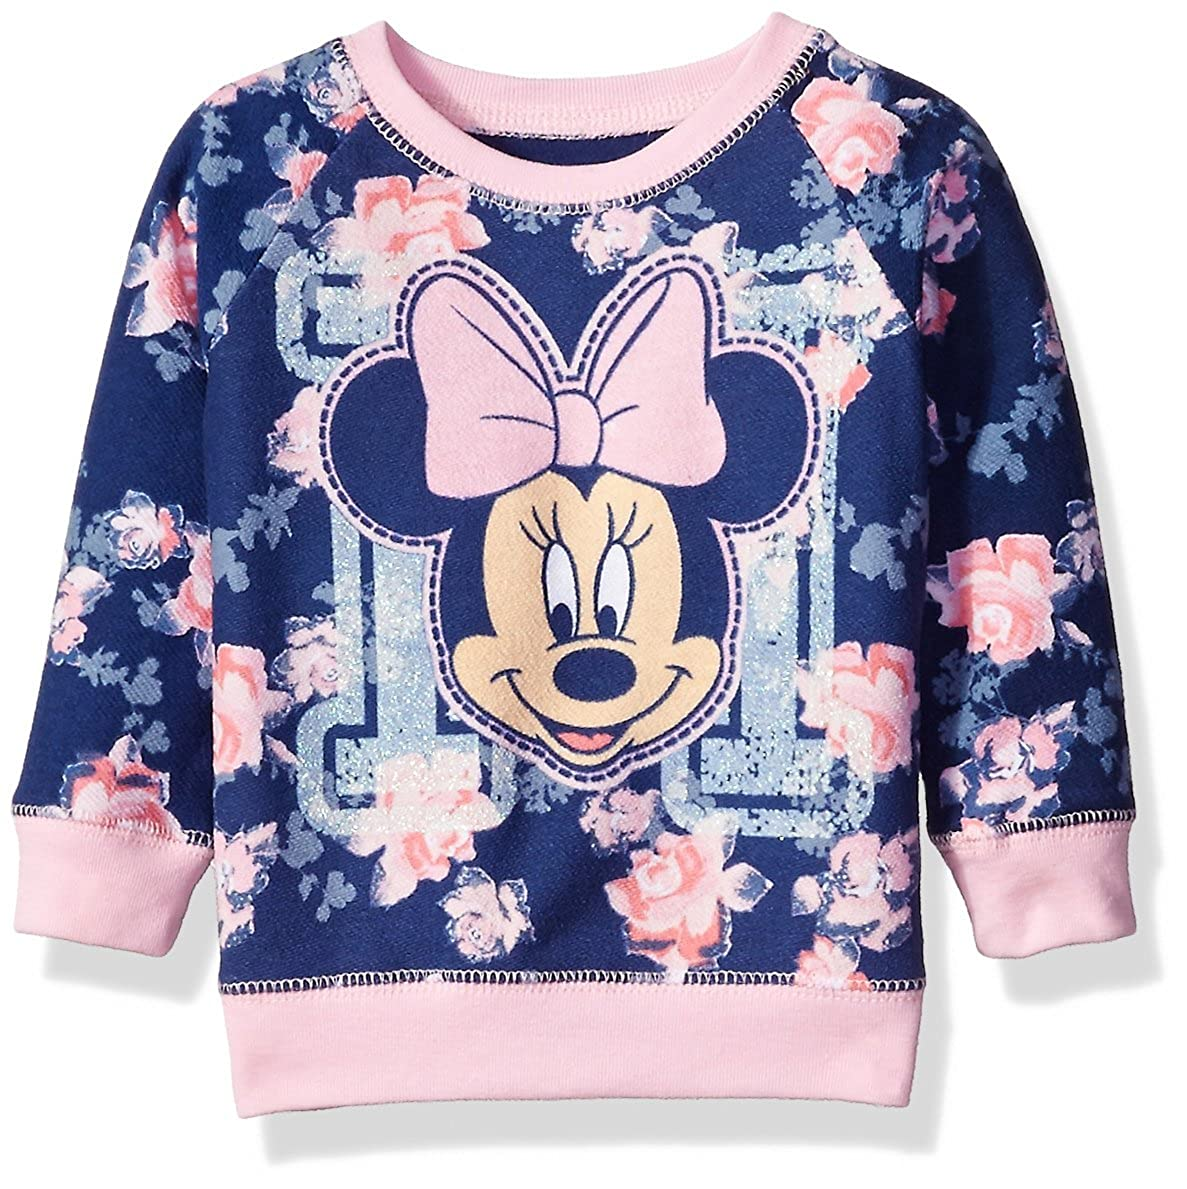 Disney girls Minnie Mouse Floral All Over Print French Terry Sweatshirt Freeze Children's Apparel ZCST533-2W61-2T01